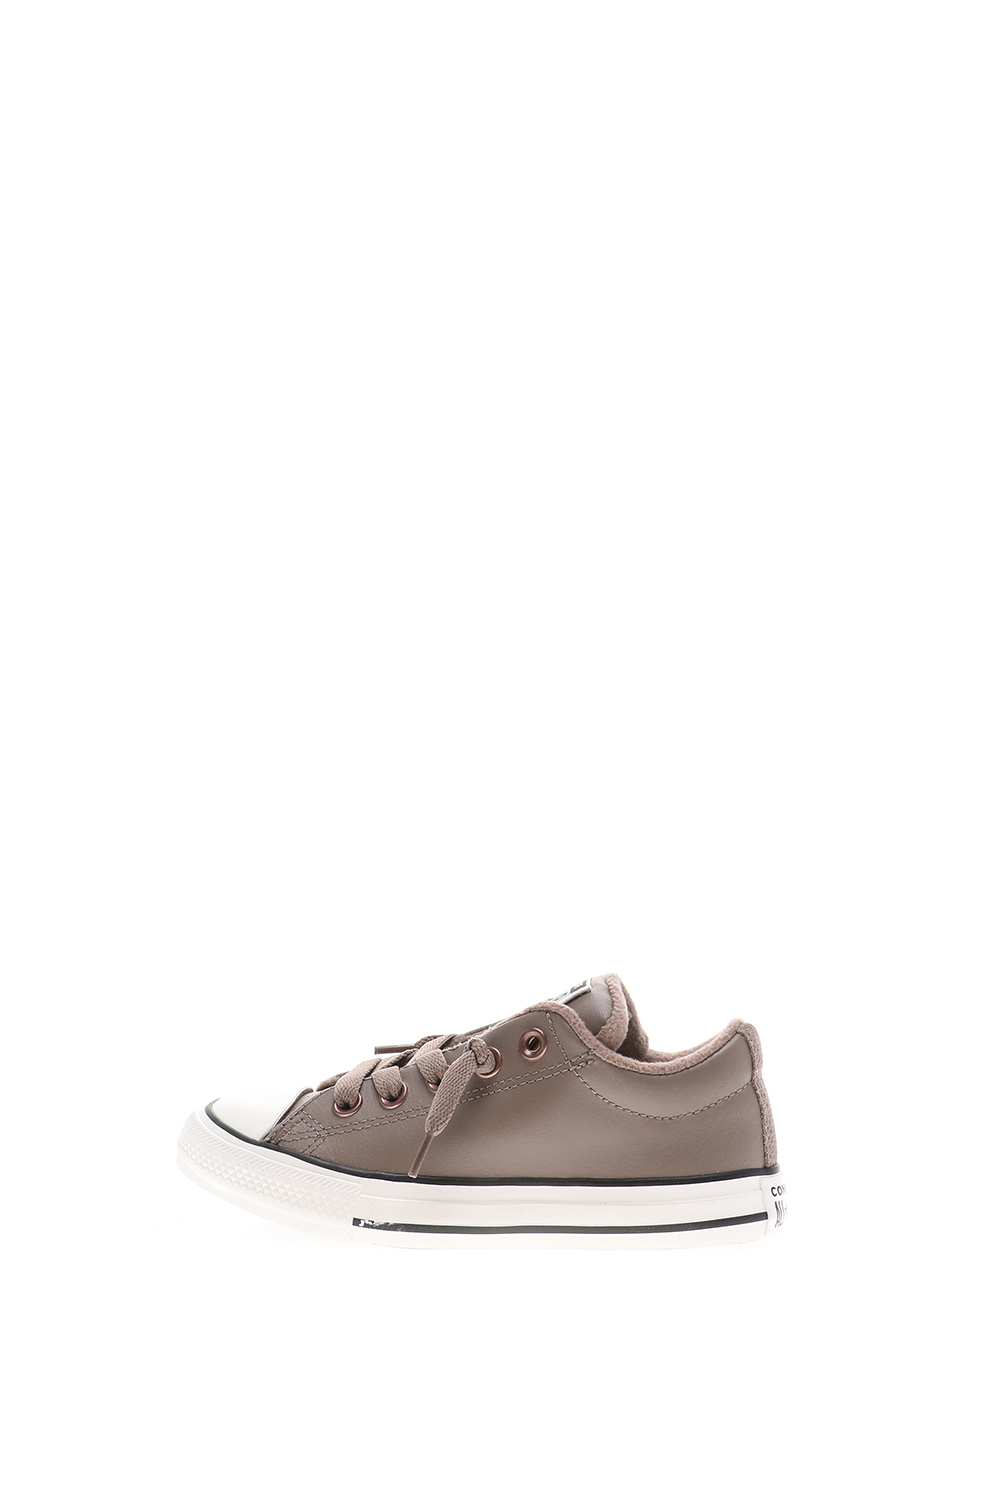 CONVERSE – Παιδικά sneakers CONVERSE Chuck Taylor All Star γκρί-μπέζ